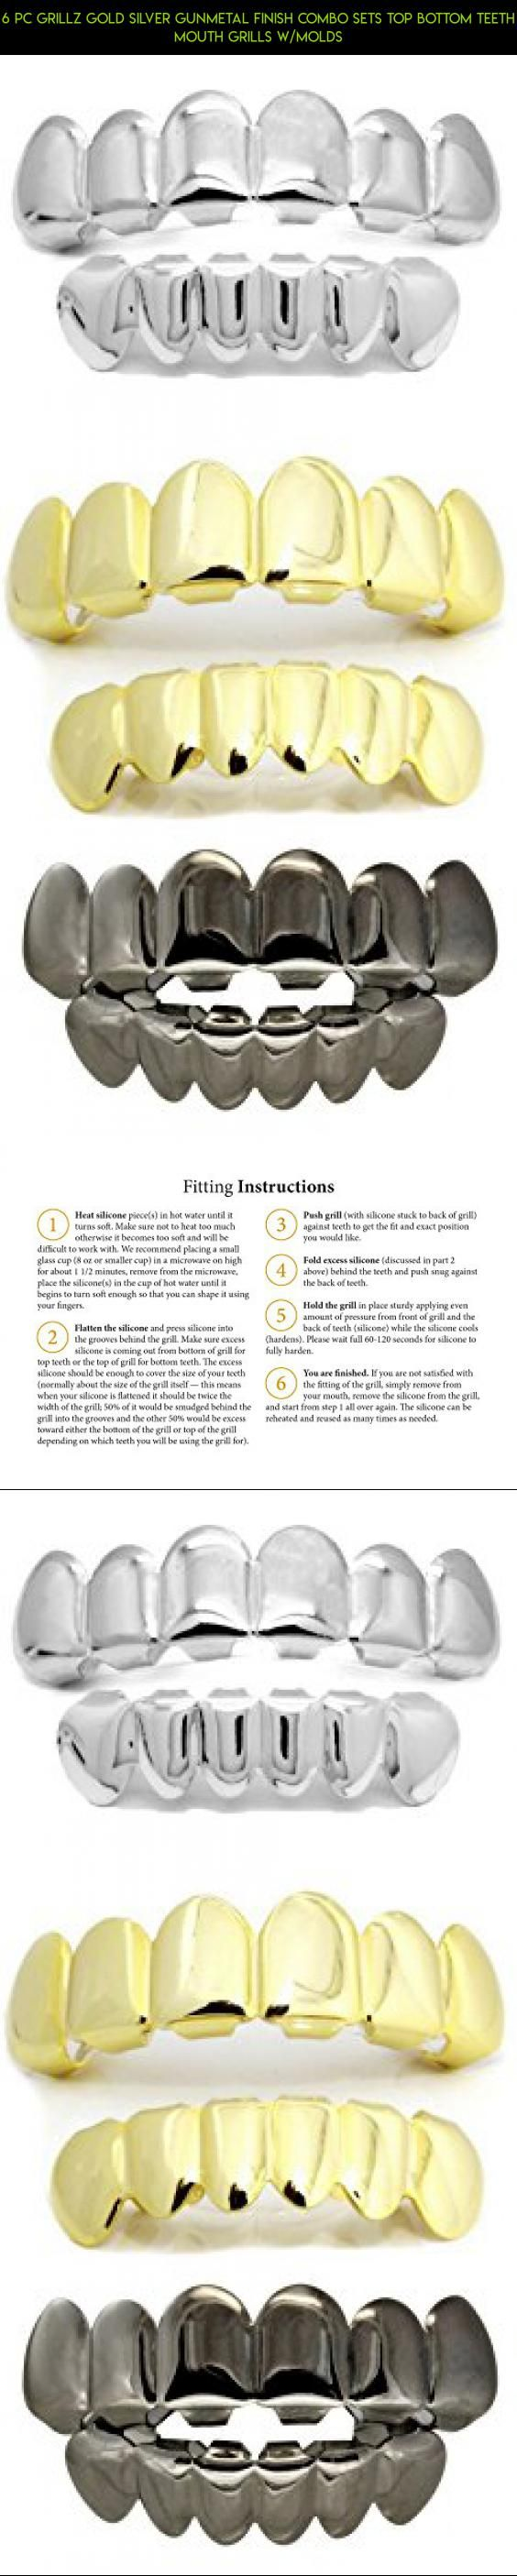 6 pc Grillz Gold Silver Gunmetal Finish Combo Sets Top Bottom Teeth Mouth Grills w/Molds #camera #shopping #gadgets #kit #drone #fpv #products #parts #racing #technology #plans #gold #grills #tech